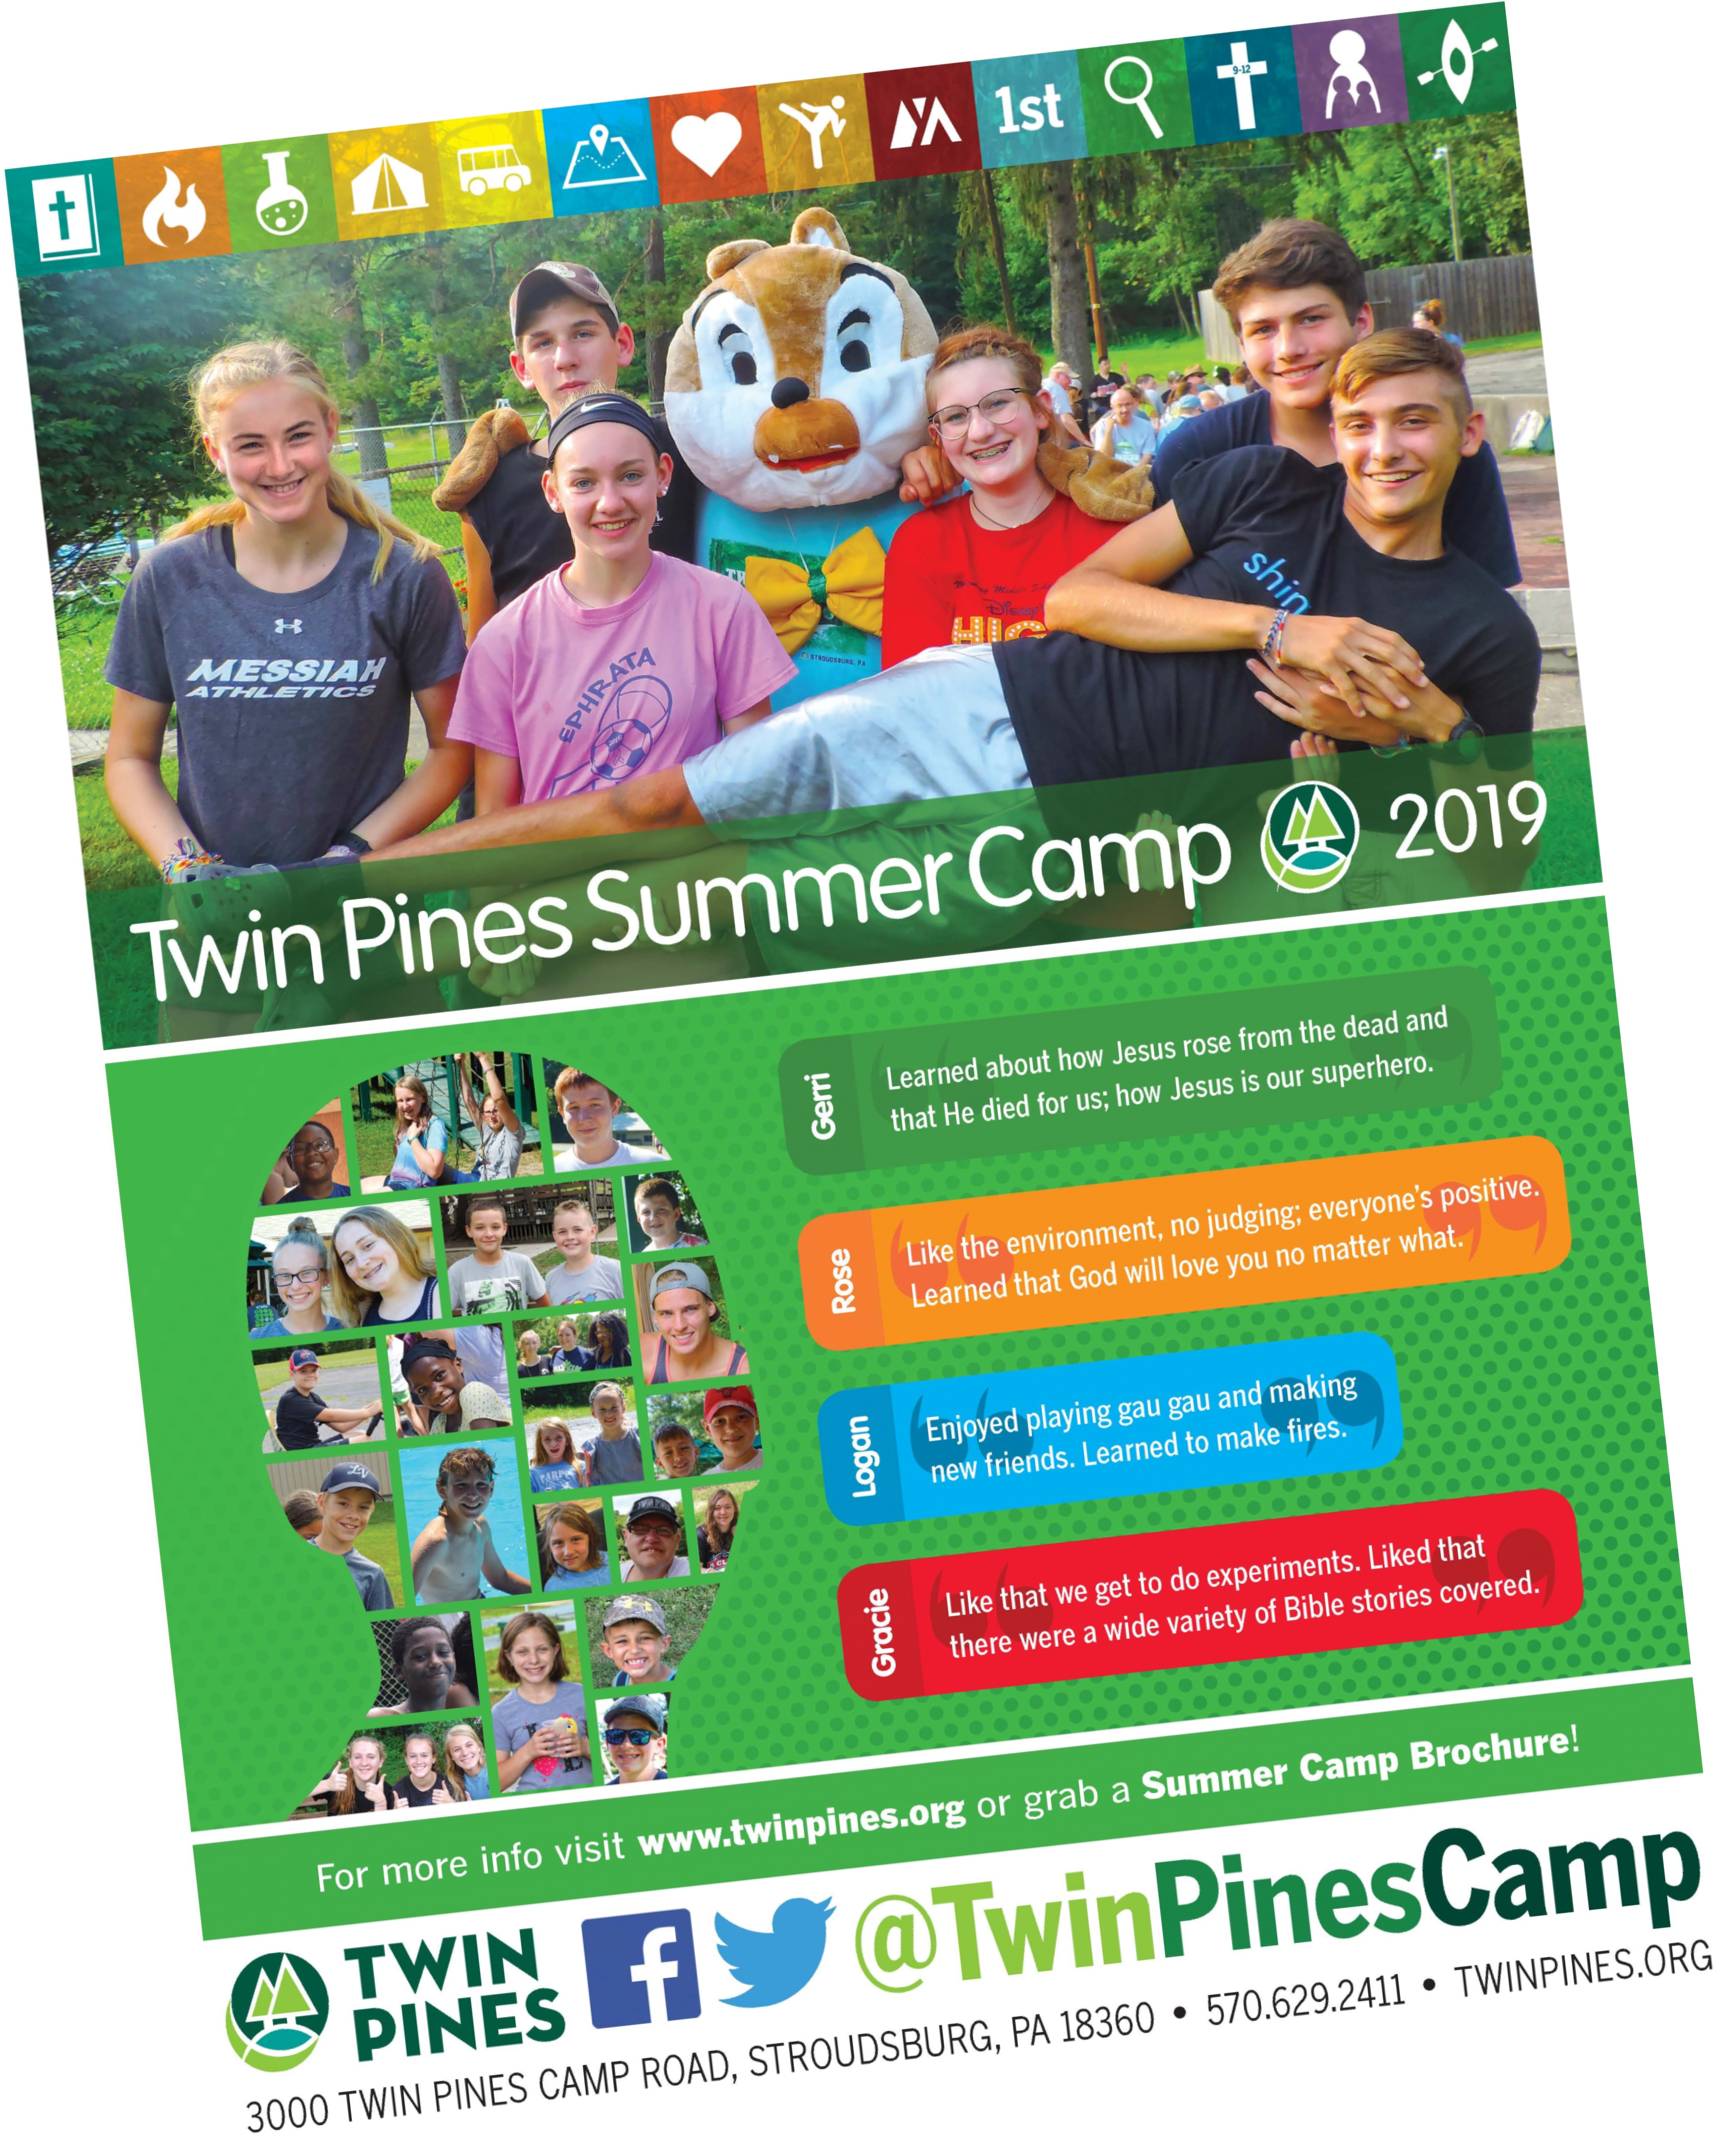 2019 Summer Camp Promo Resources - Twin Pines Camp